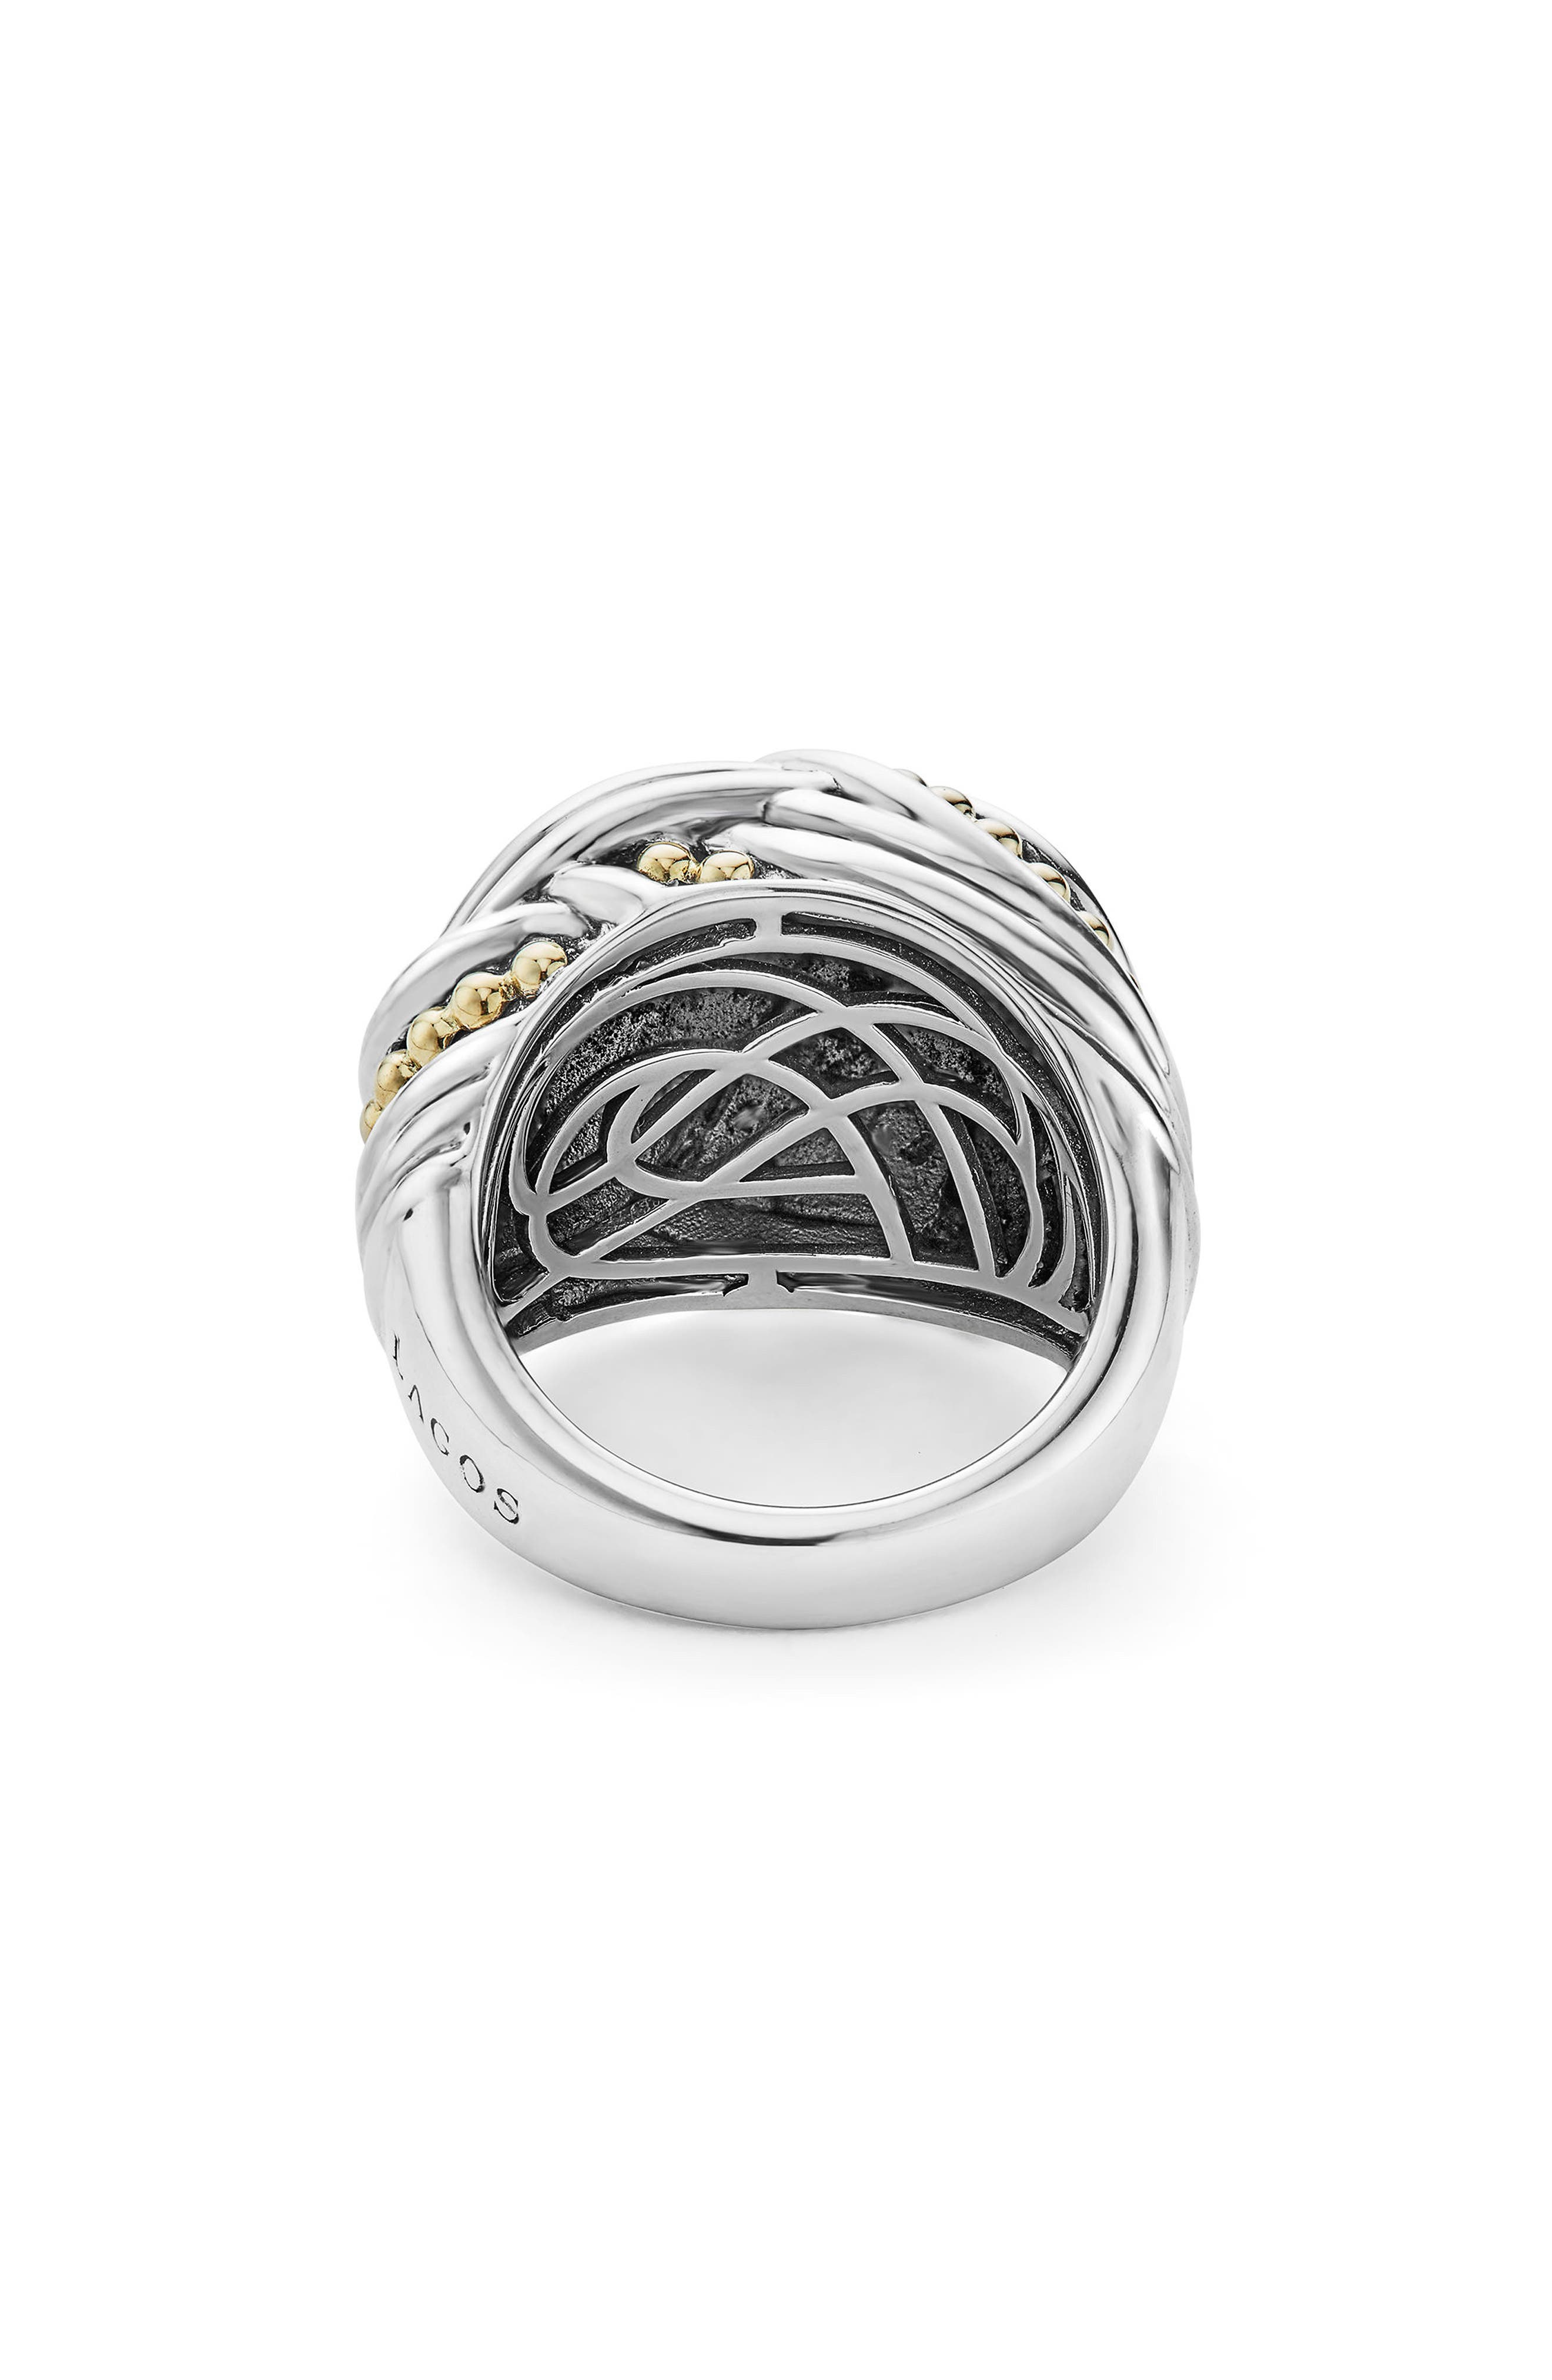 Torsade Large Rounded Rectangle Ring,                             Alternate thumbnail 4, color,                             SILVER/ GOLD